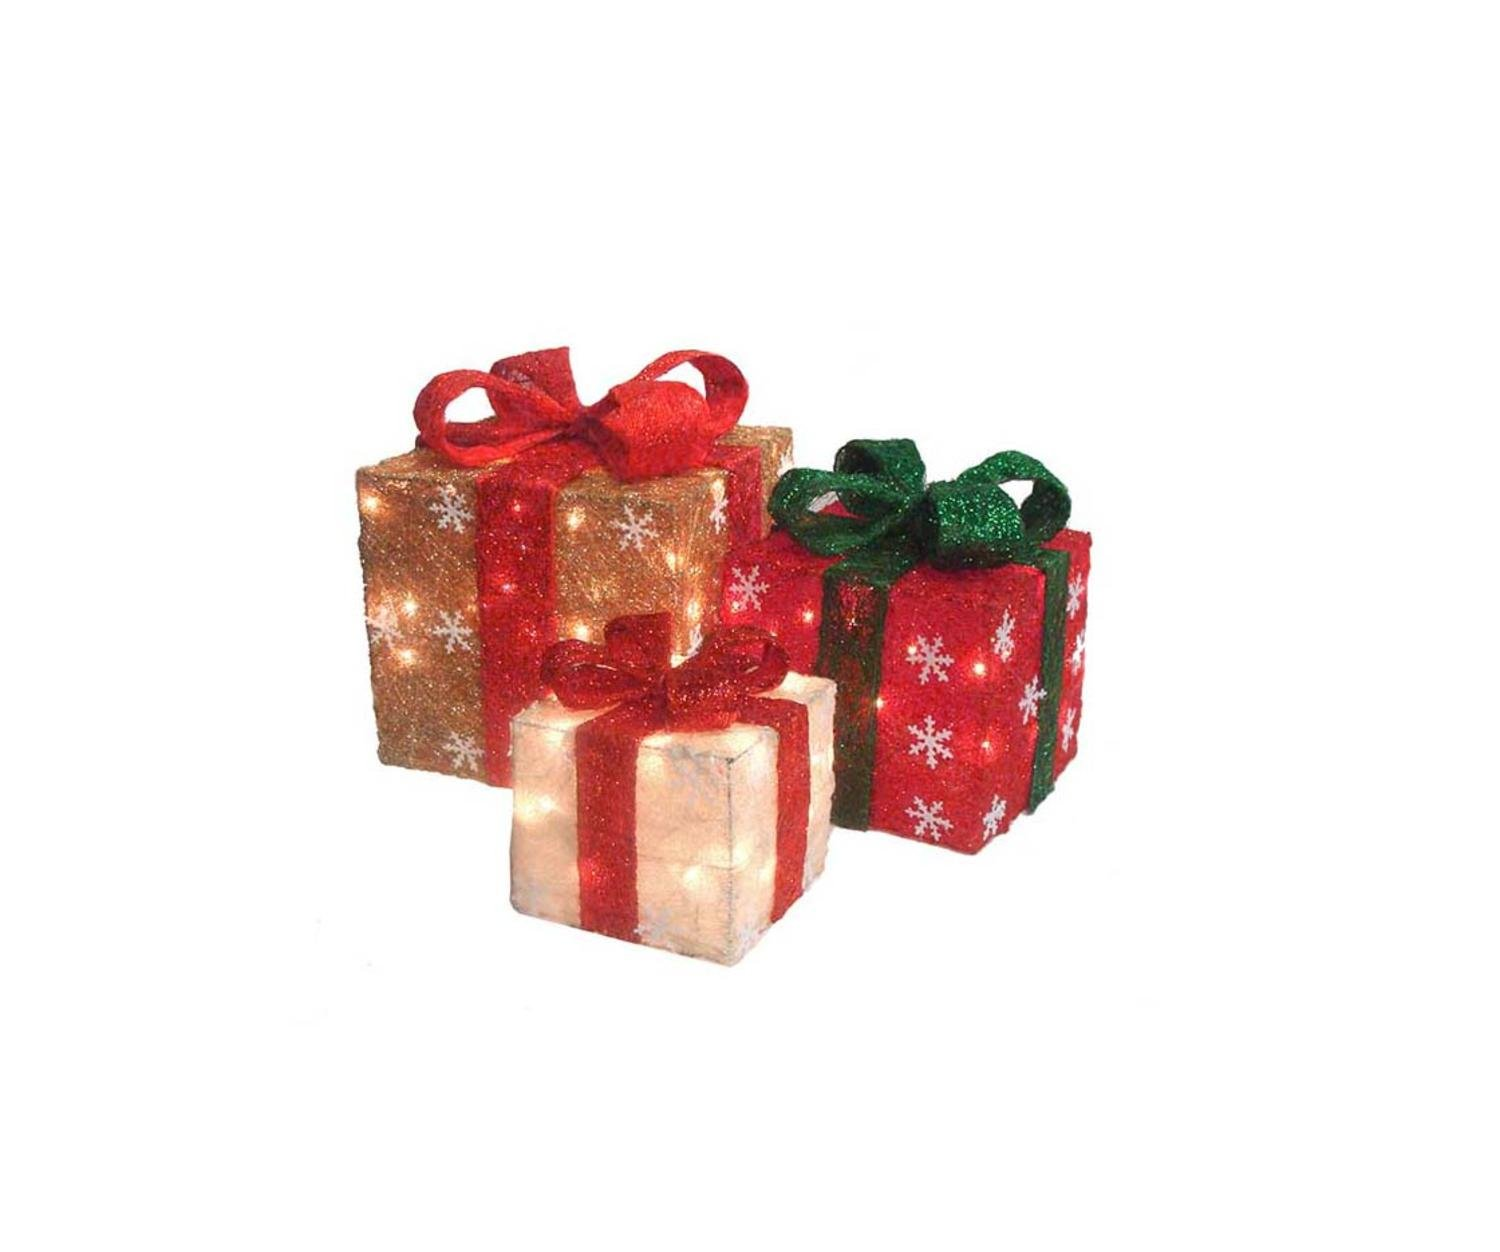 Northlight Set of 3 Lighted Gold, Green & Cream Sisal Gift Boxes Christmas Outdoor Decorations